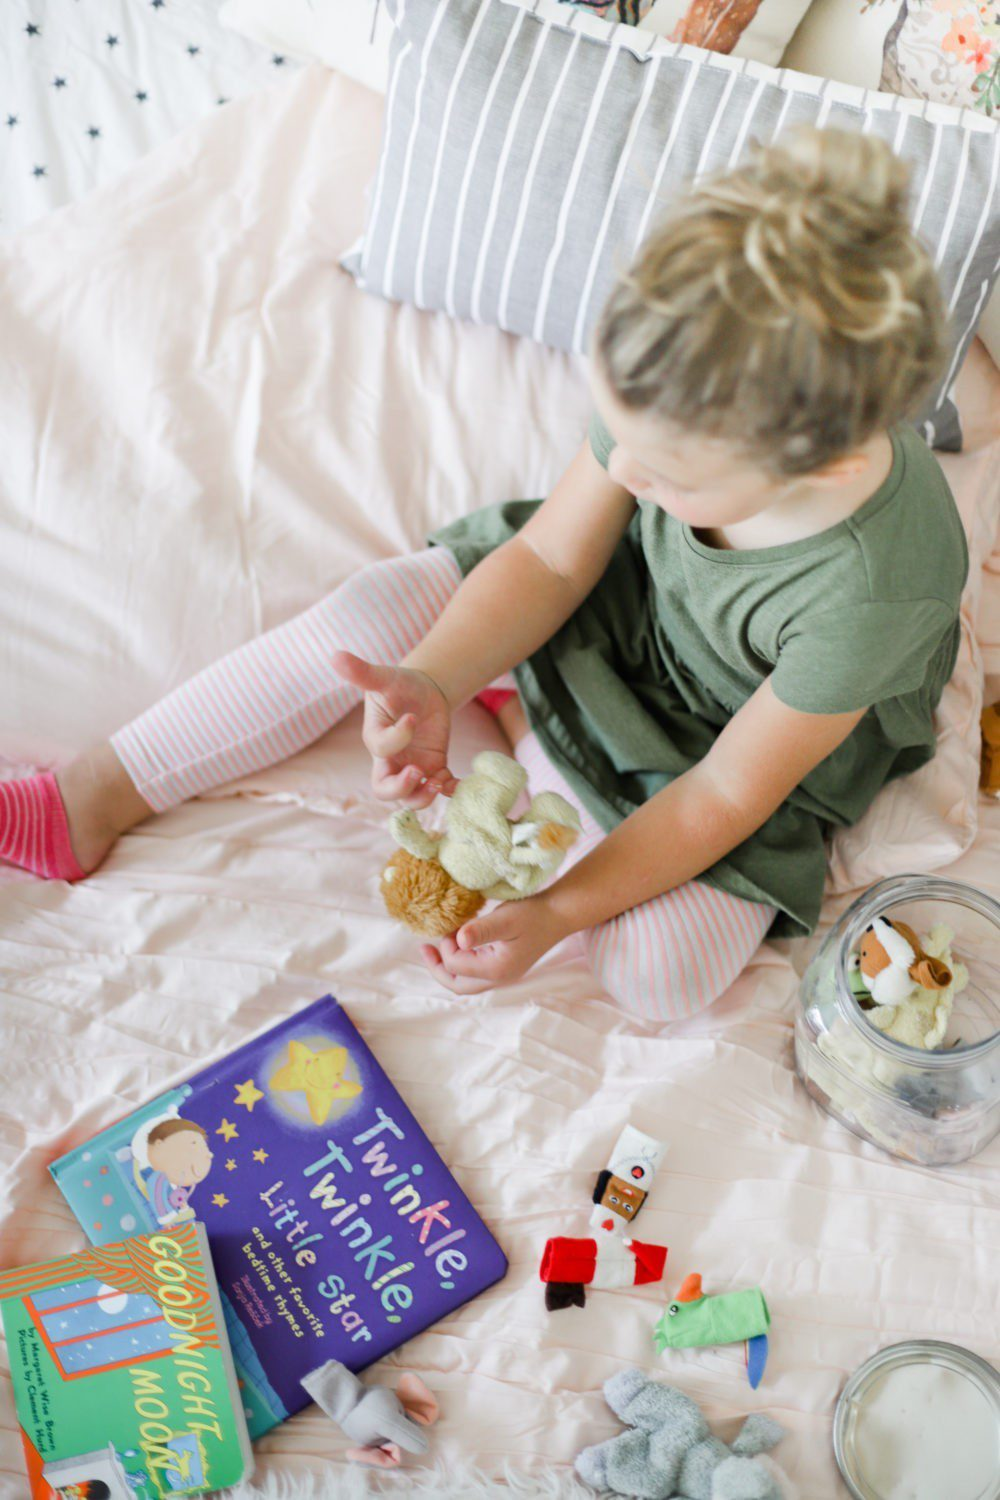 6 Best Tips to Transition Your Child from Crib to Toddler Bed: Aria's Big Girl Bed | 6 Best Tips to Transition Your Child from Crib to Toddler Bed: Aria's Big Girl Bed by popular Florida lifestyle blog, Fresh Mommy: image of a little girl playing with finger puppets on her bed.